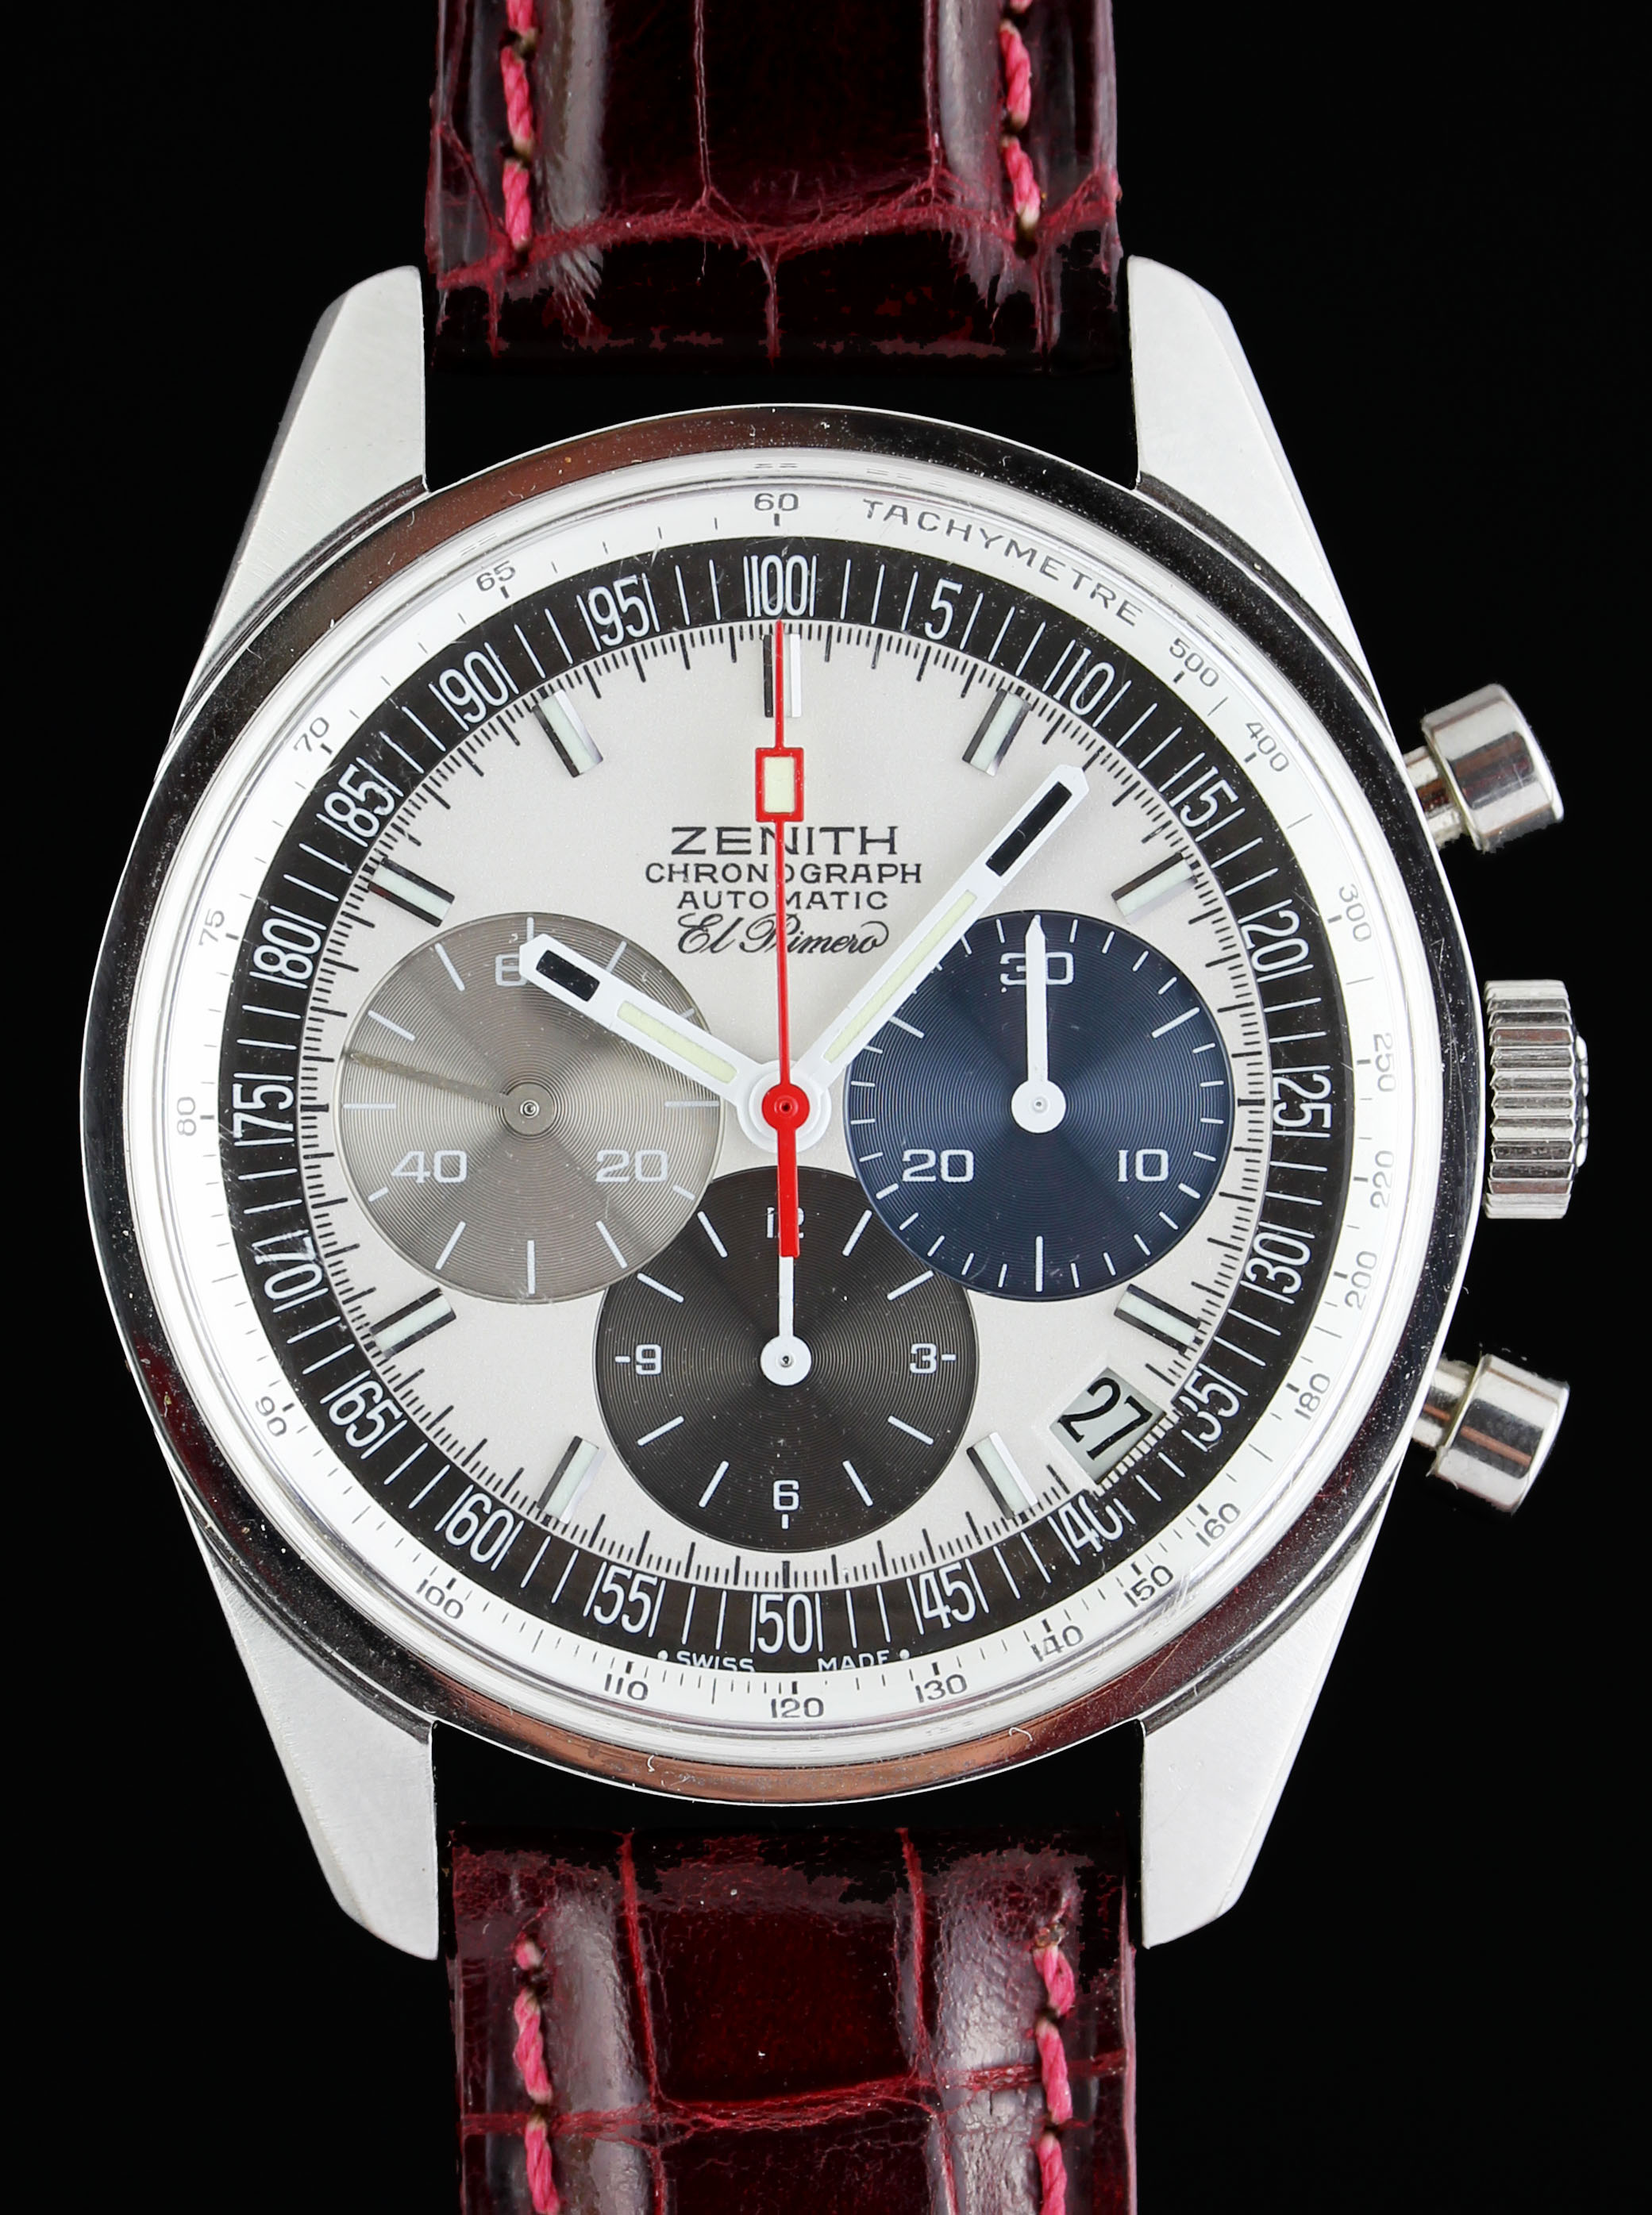 Zenith El Primero chronograph from the early 70' ies